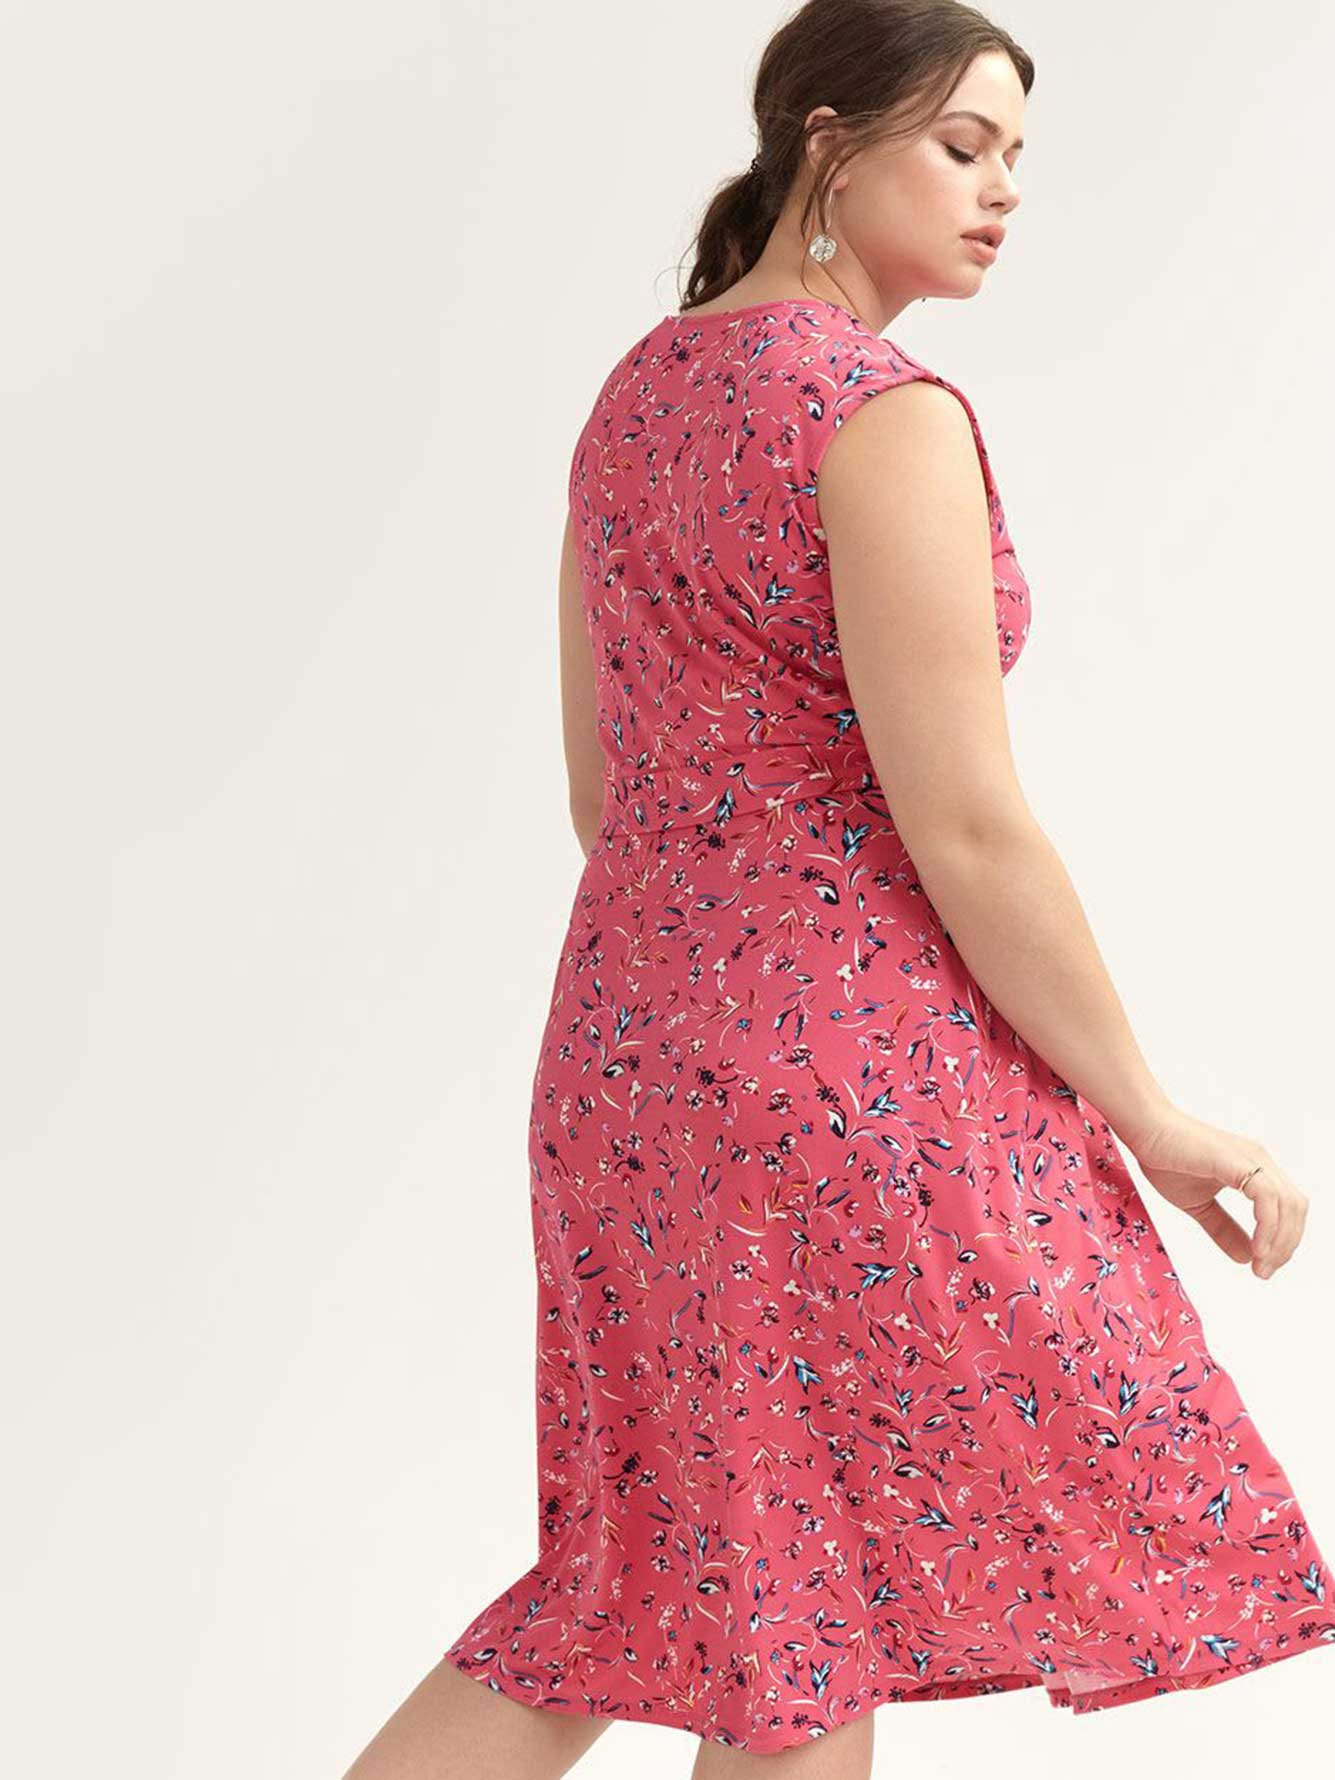 Floral Dress with Wrap Front